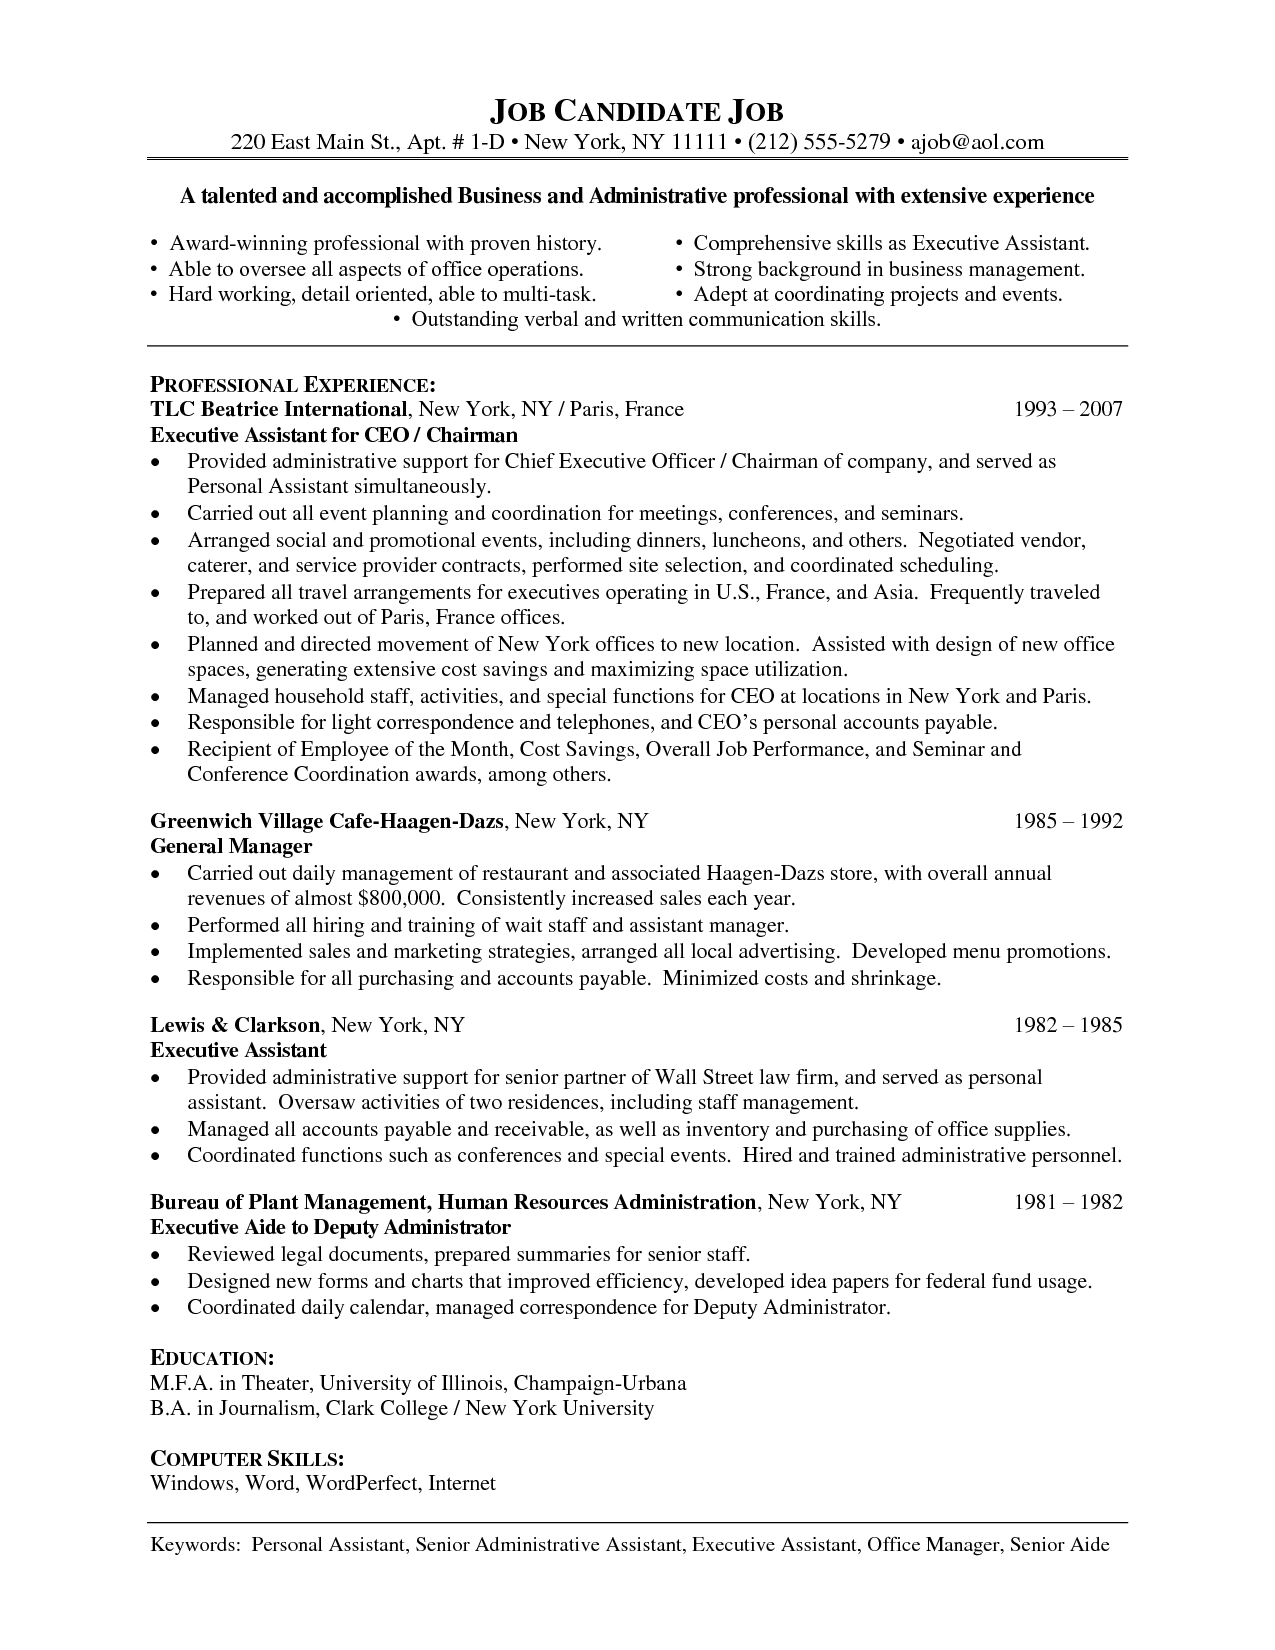 Accounts Payable And Receivable Resume Interesting Office Admin Resume Sample System Administrator Linux Professional .